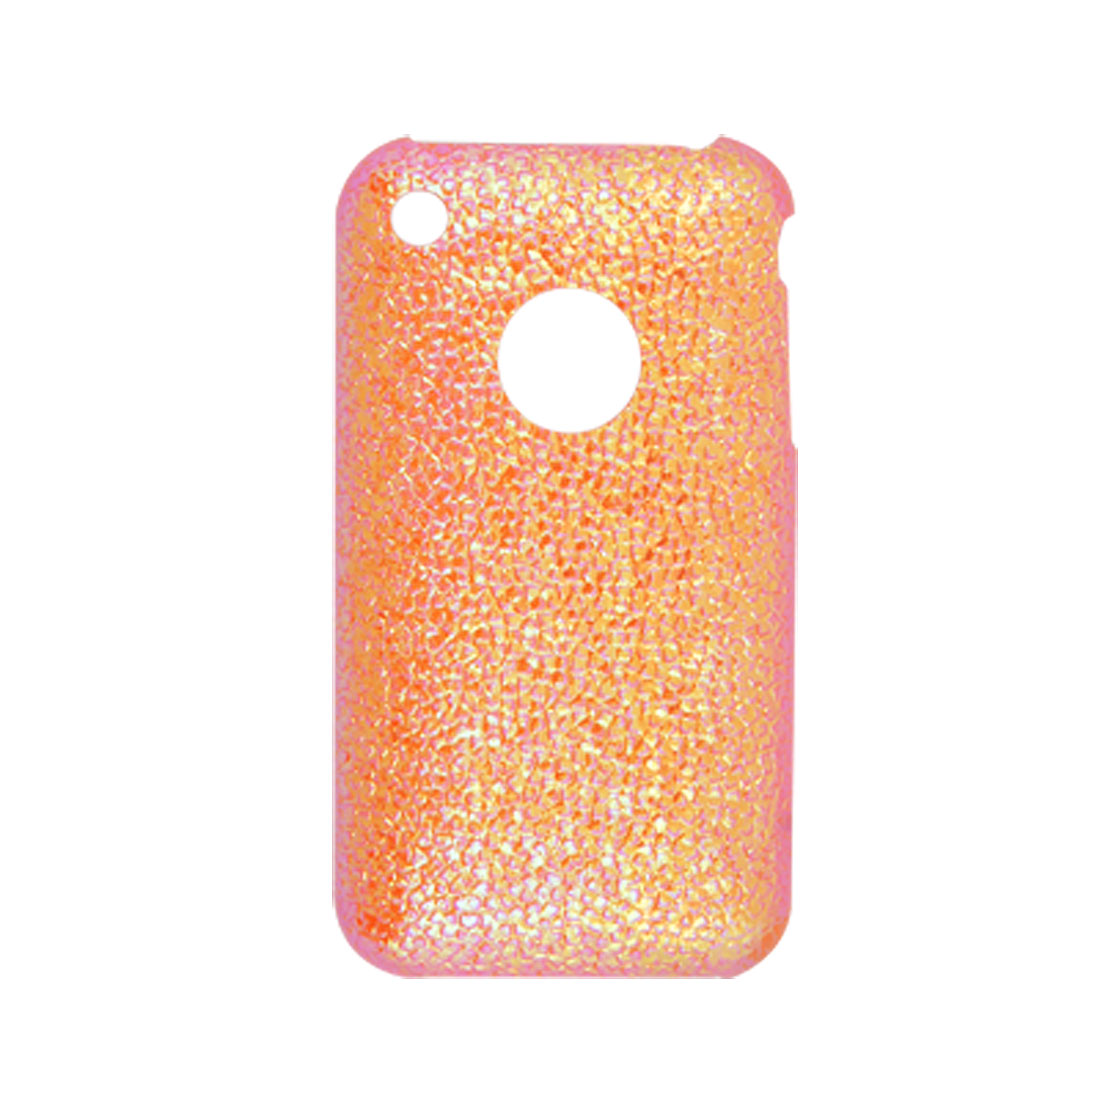 Nonslip Orange Red Hard Plastic Glittery Back Hole Case for iPhone 3G